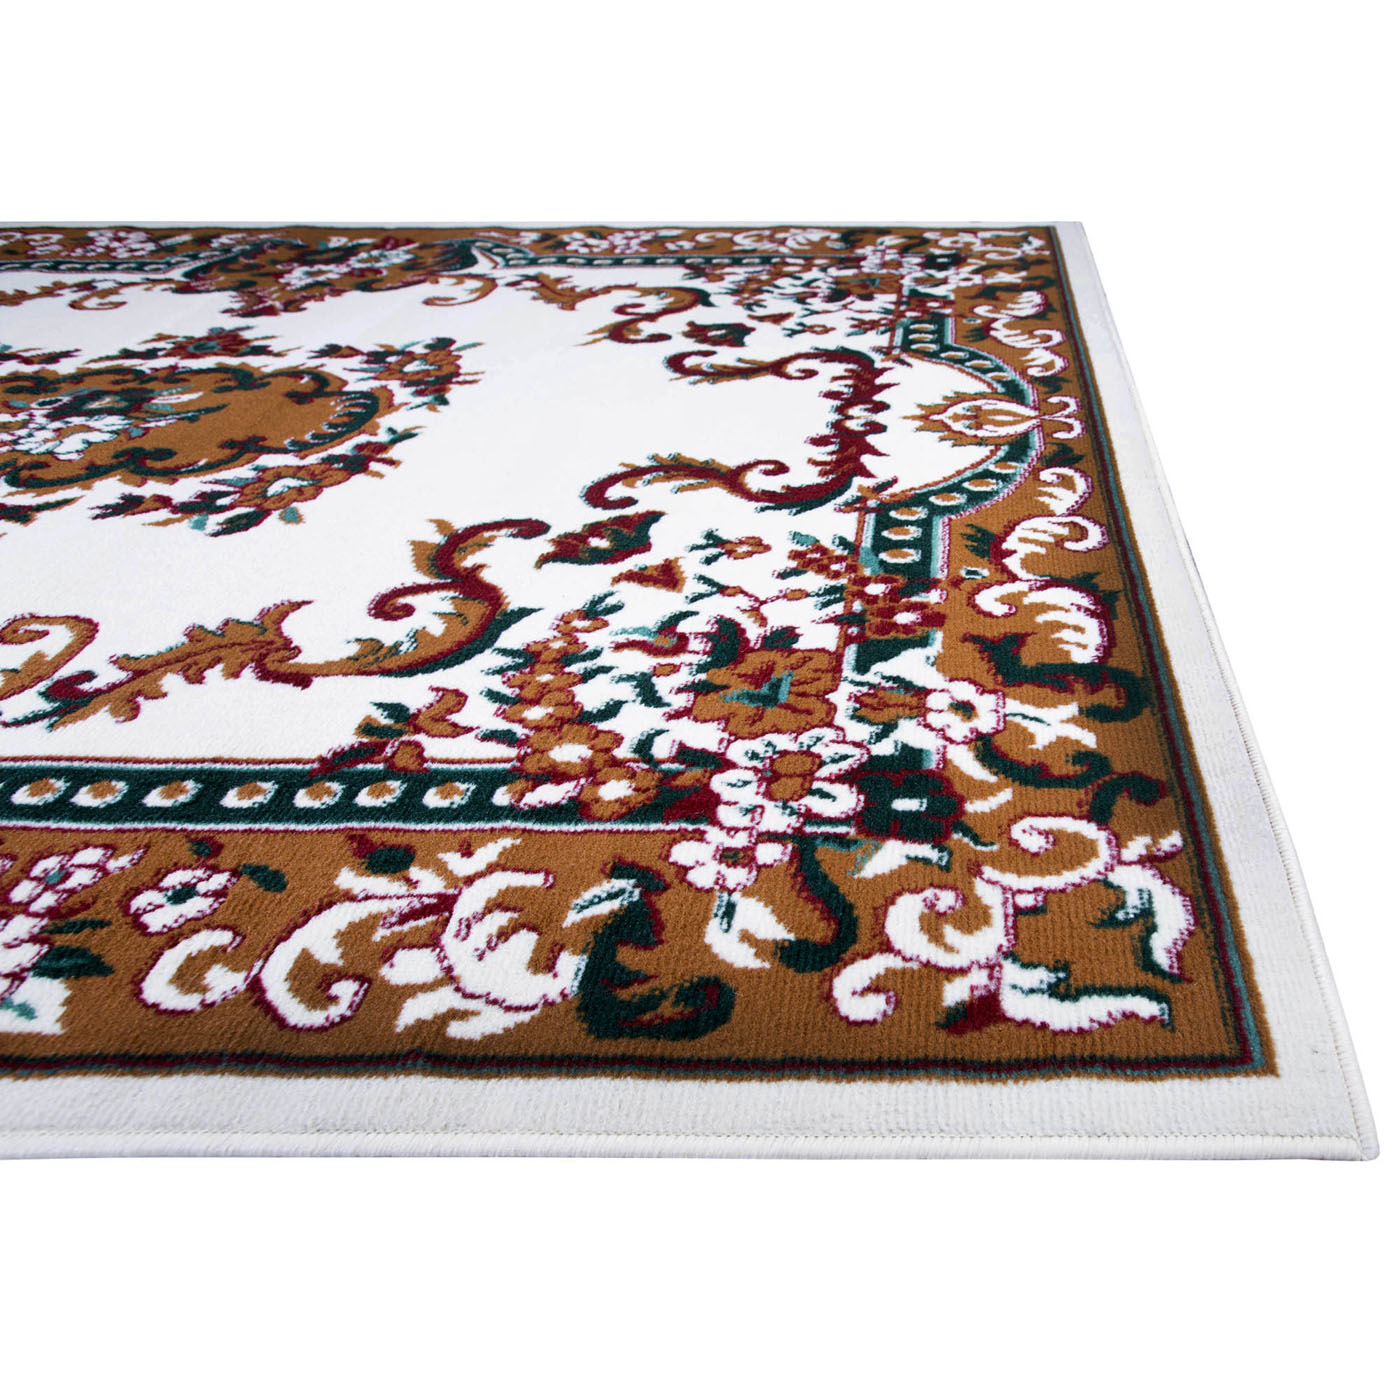 oriental floral border area rug 5x8 scrolls persian carpet actual 5 39 2 x 7 39 4 ebay. Black Bedroom Furniture Sets. Home Design Ideas